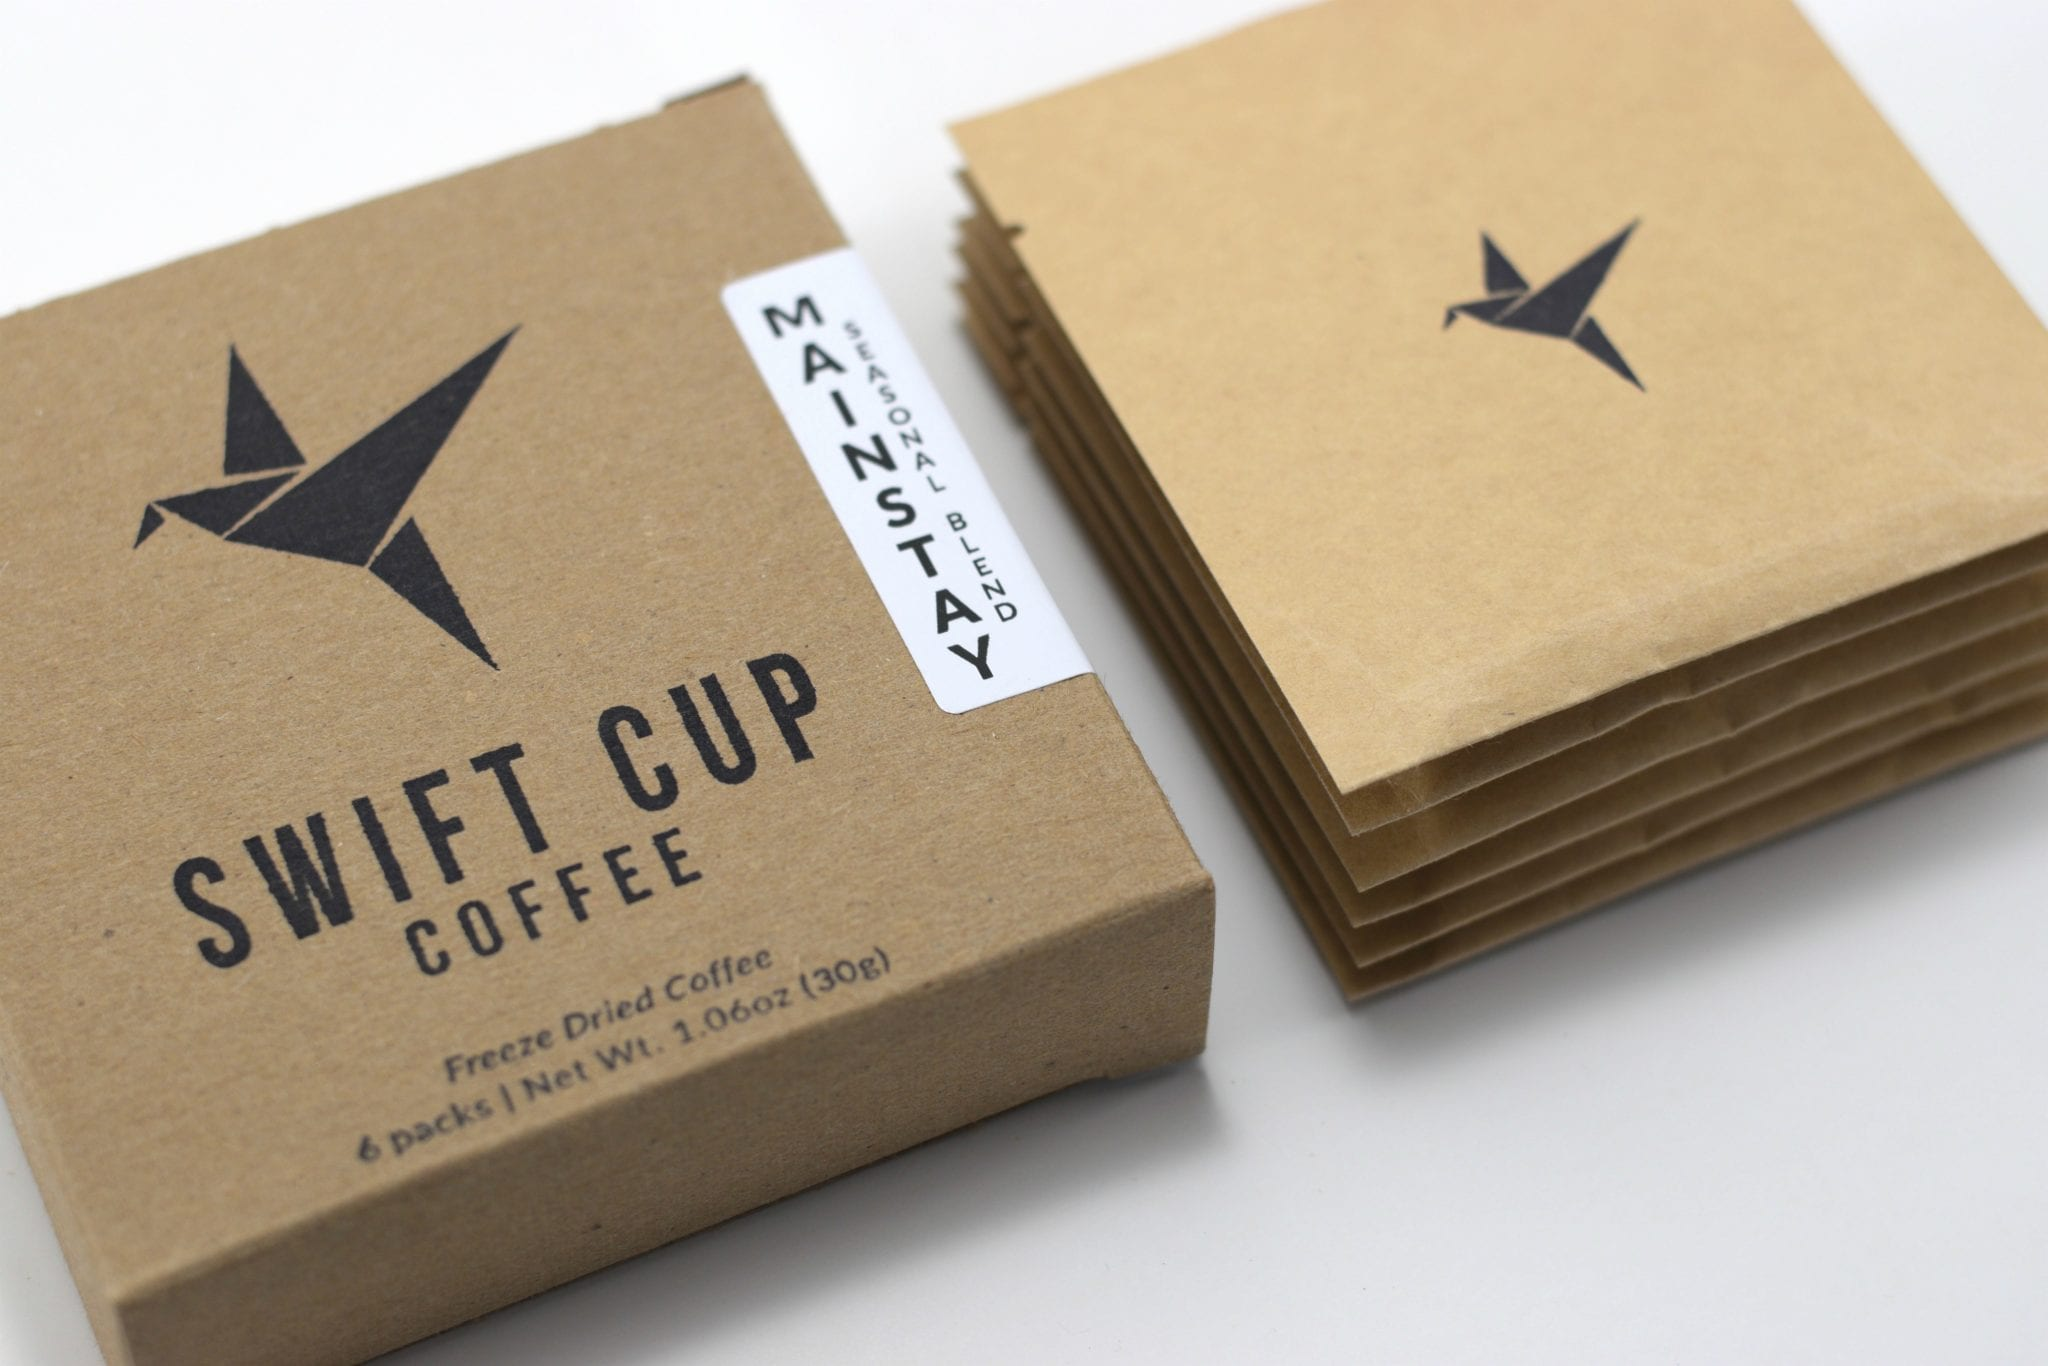 swift cup coffee